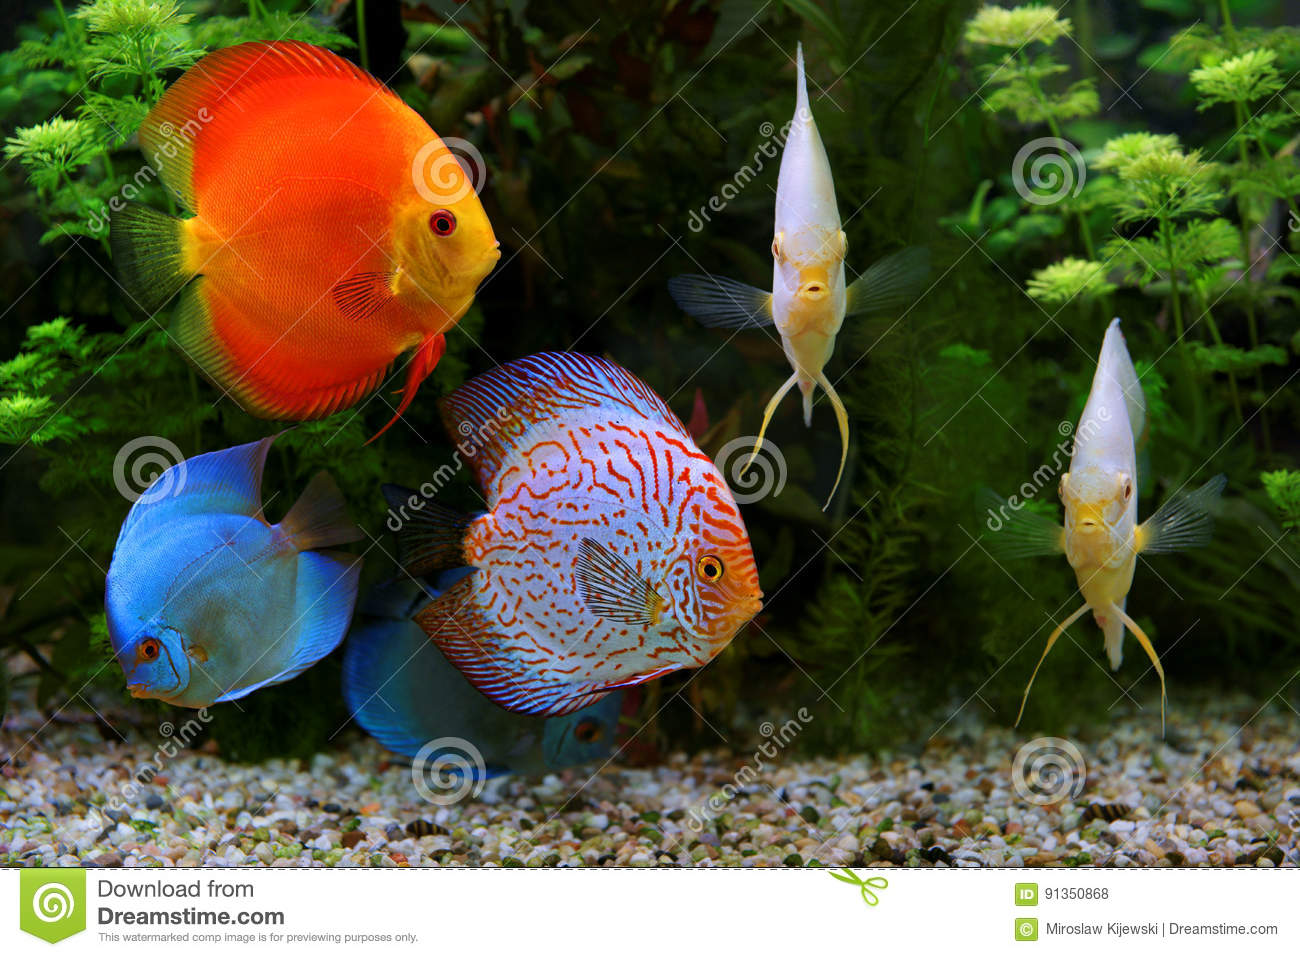 Freshwater fish amazon - Discus Symphysodon Multi Colored Cichlids In The Aquarium The Freshwater Fish Native To The Amazon River Basin